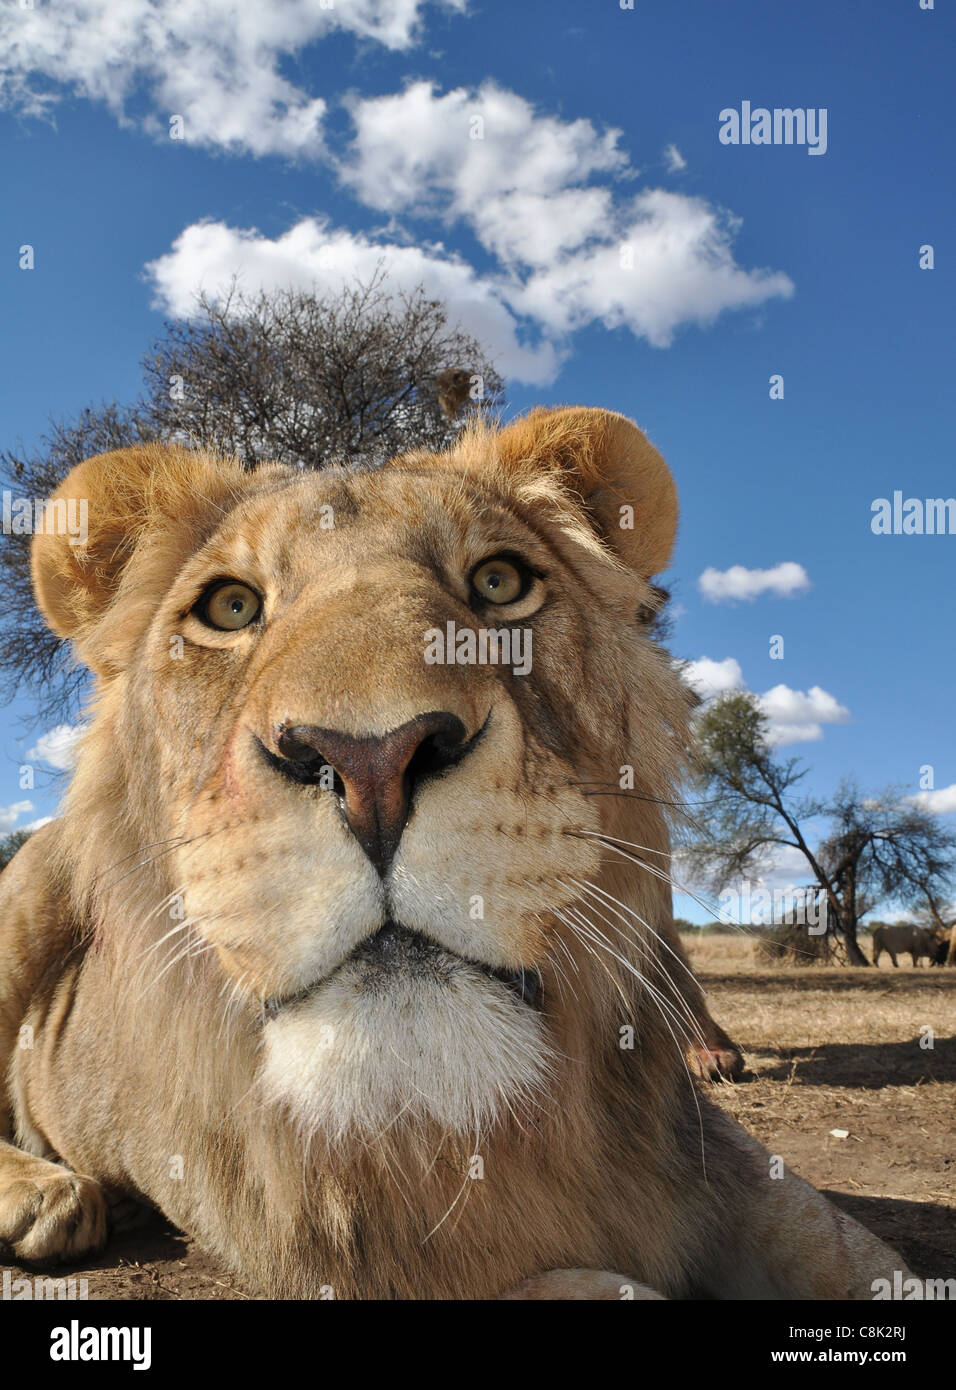 African lion cubs - Stock Image